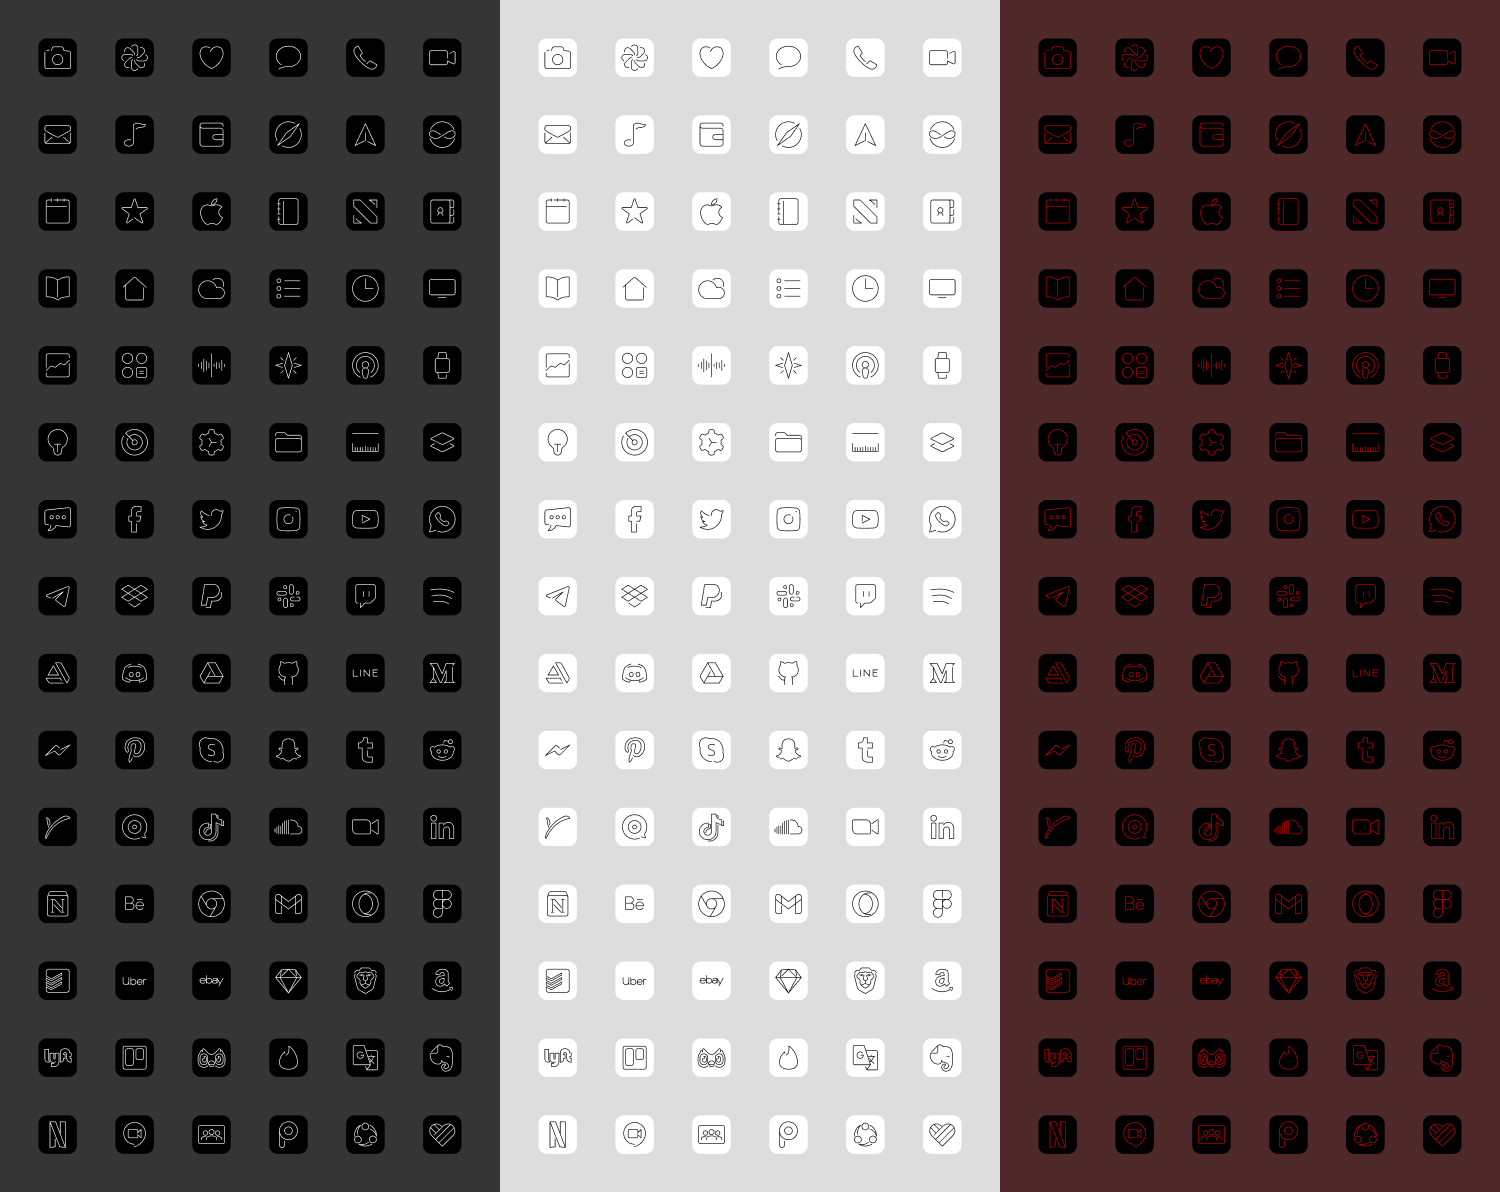 90 custom iOS icons in black, white and scarlet.